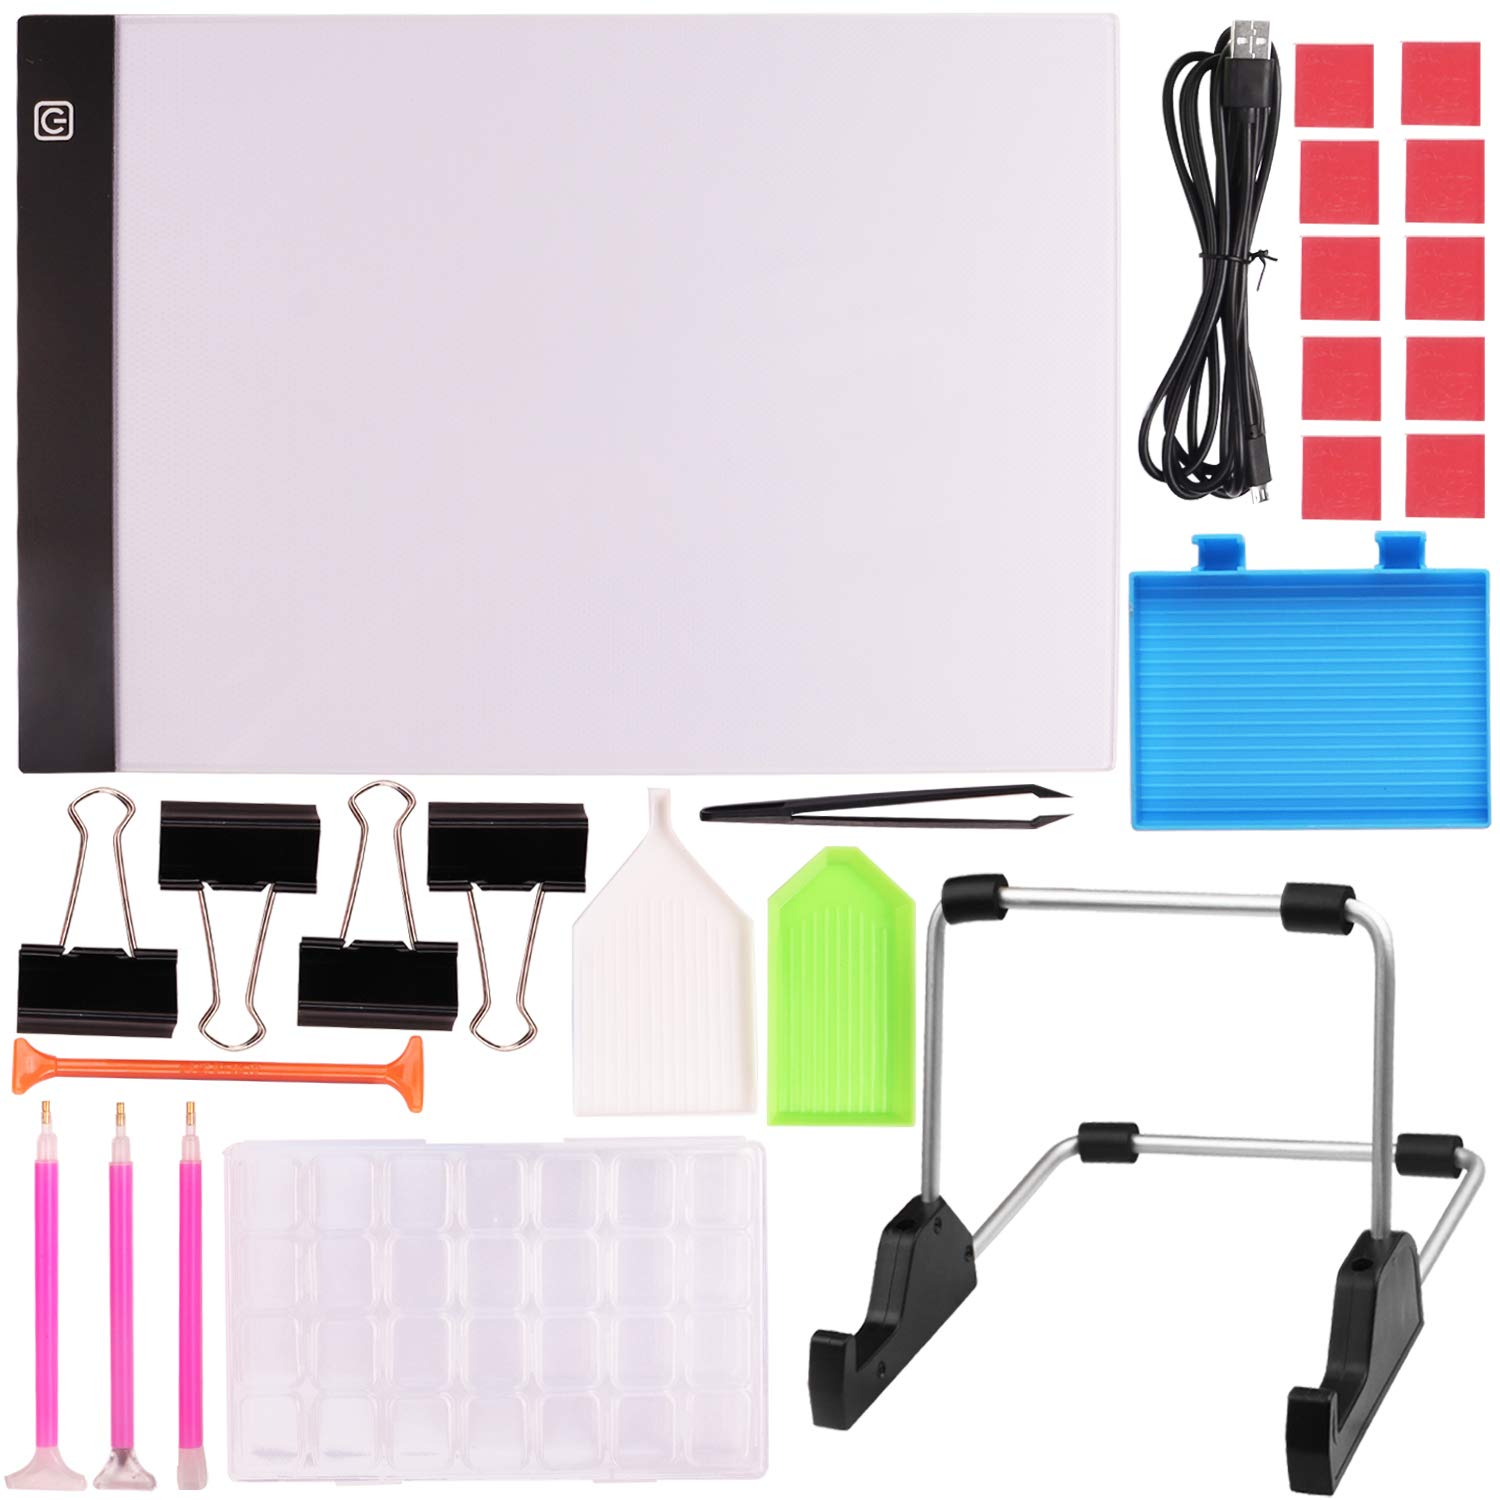 Diamond Painting Light Board A4 Portable LED Light Box Pad with 20 Pieces Diamond Painting Tools for Art Craft 5D DIY Diamond Painting Drawing Accessories for Adults or Kids by INFELING